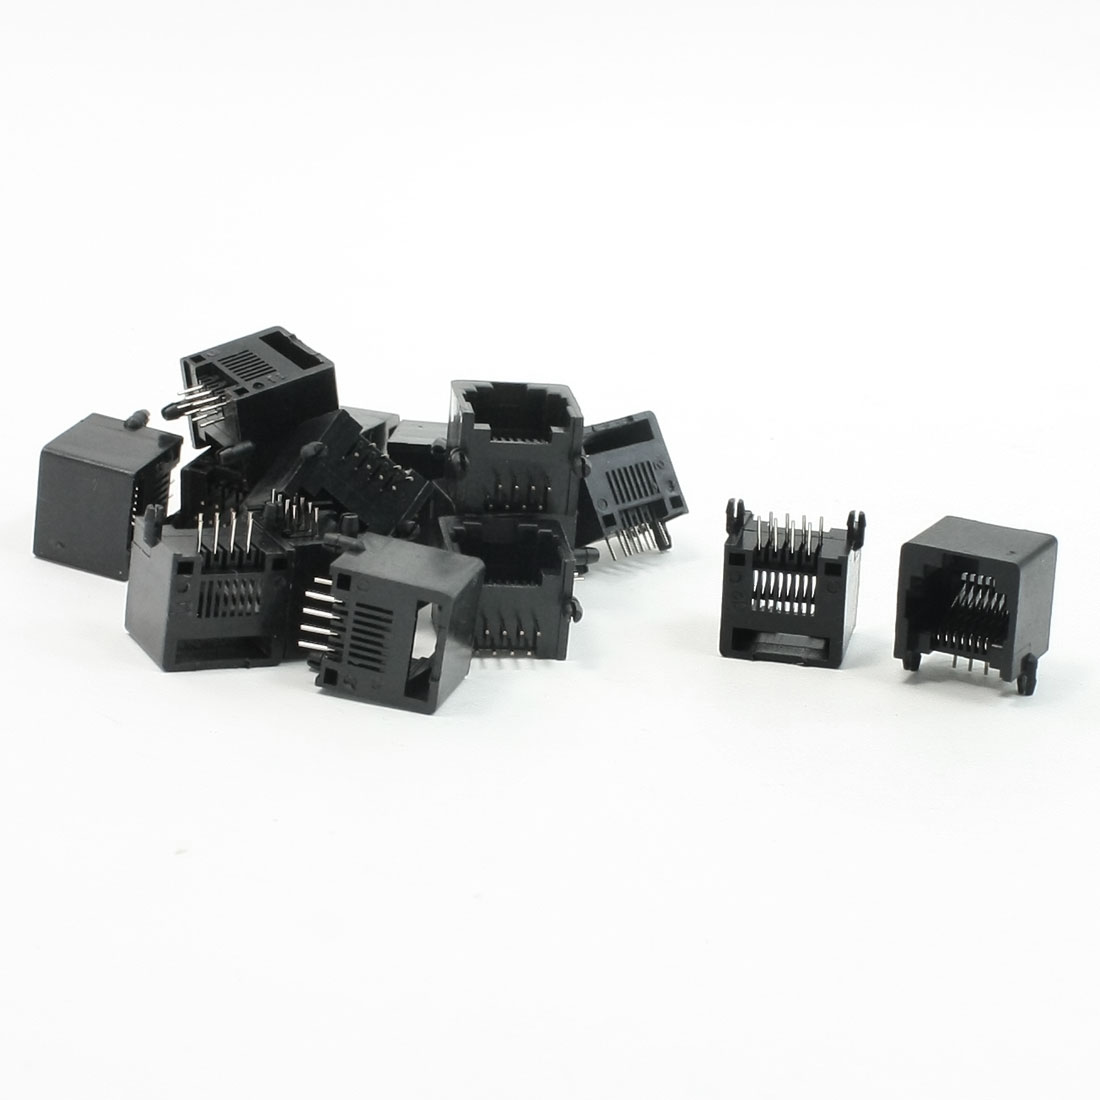 15pcs RJ45 8P8C Computer Internet Network PCB Jack Socket Black